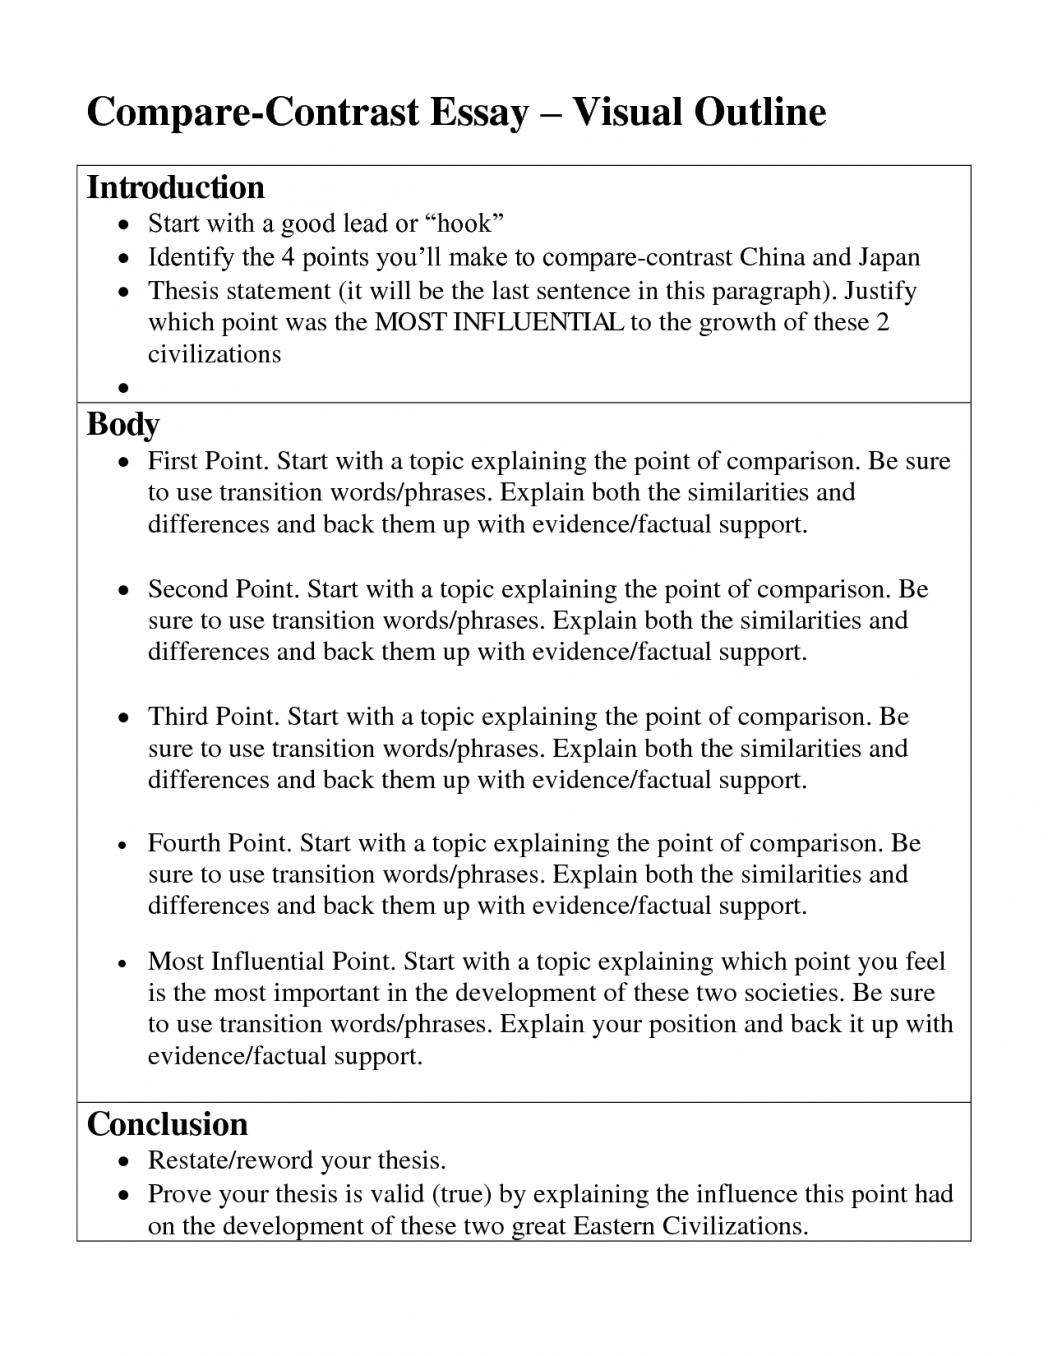 009 Compare And Contrast Essay Topics For High School Students English College Pdf Research Paper 1048x1356 Fantastic Easy Sports